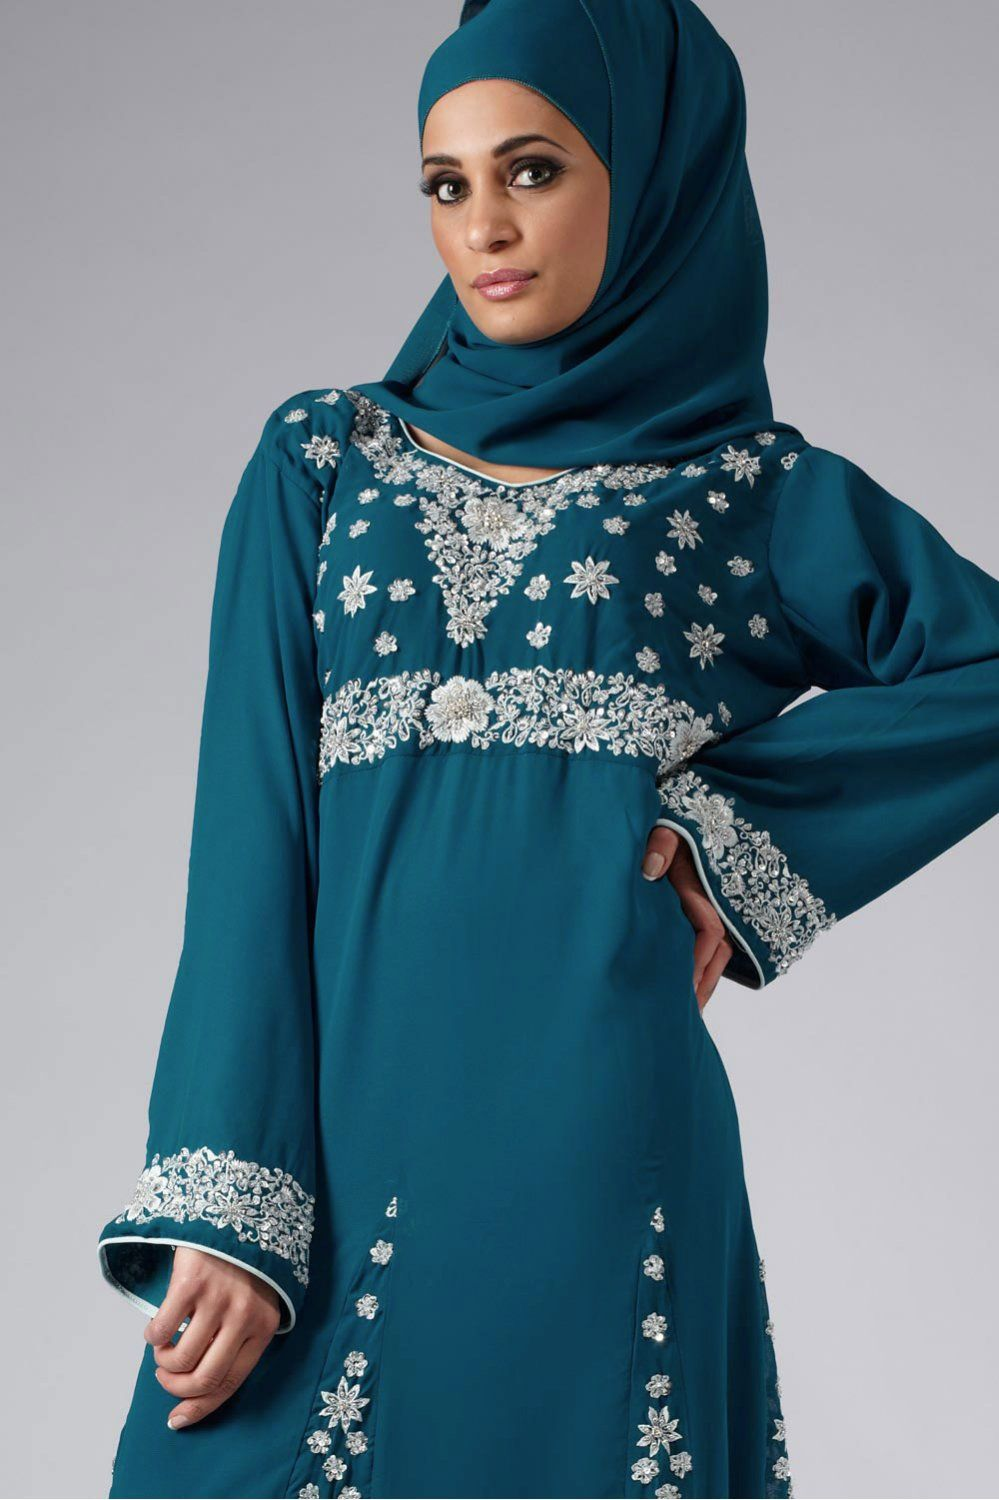 Lace umbrella abaya  blue and silver jilbab  AbayasHijab  Pinterest  Abayas Hijab